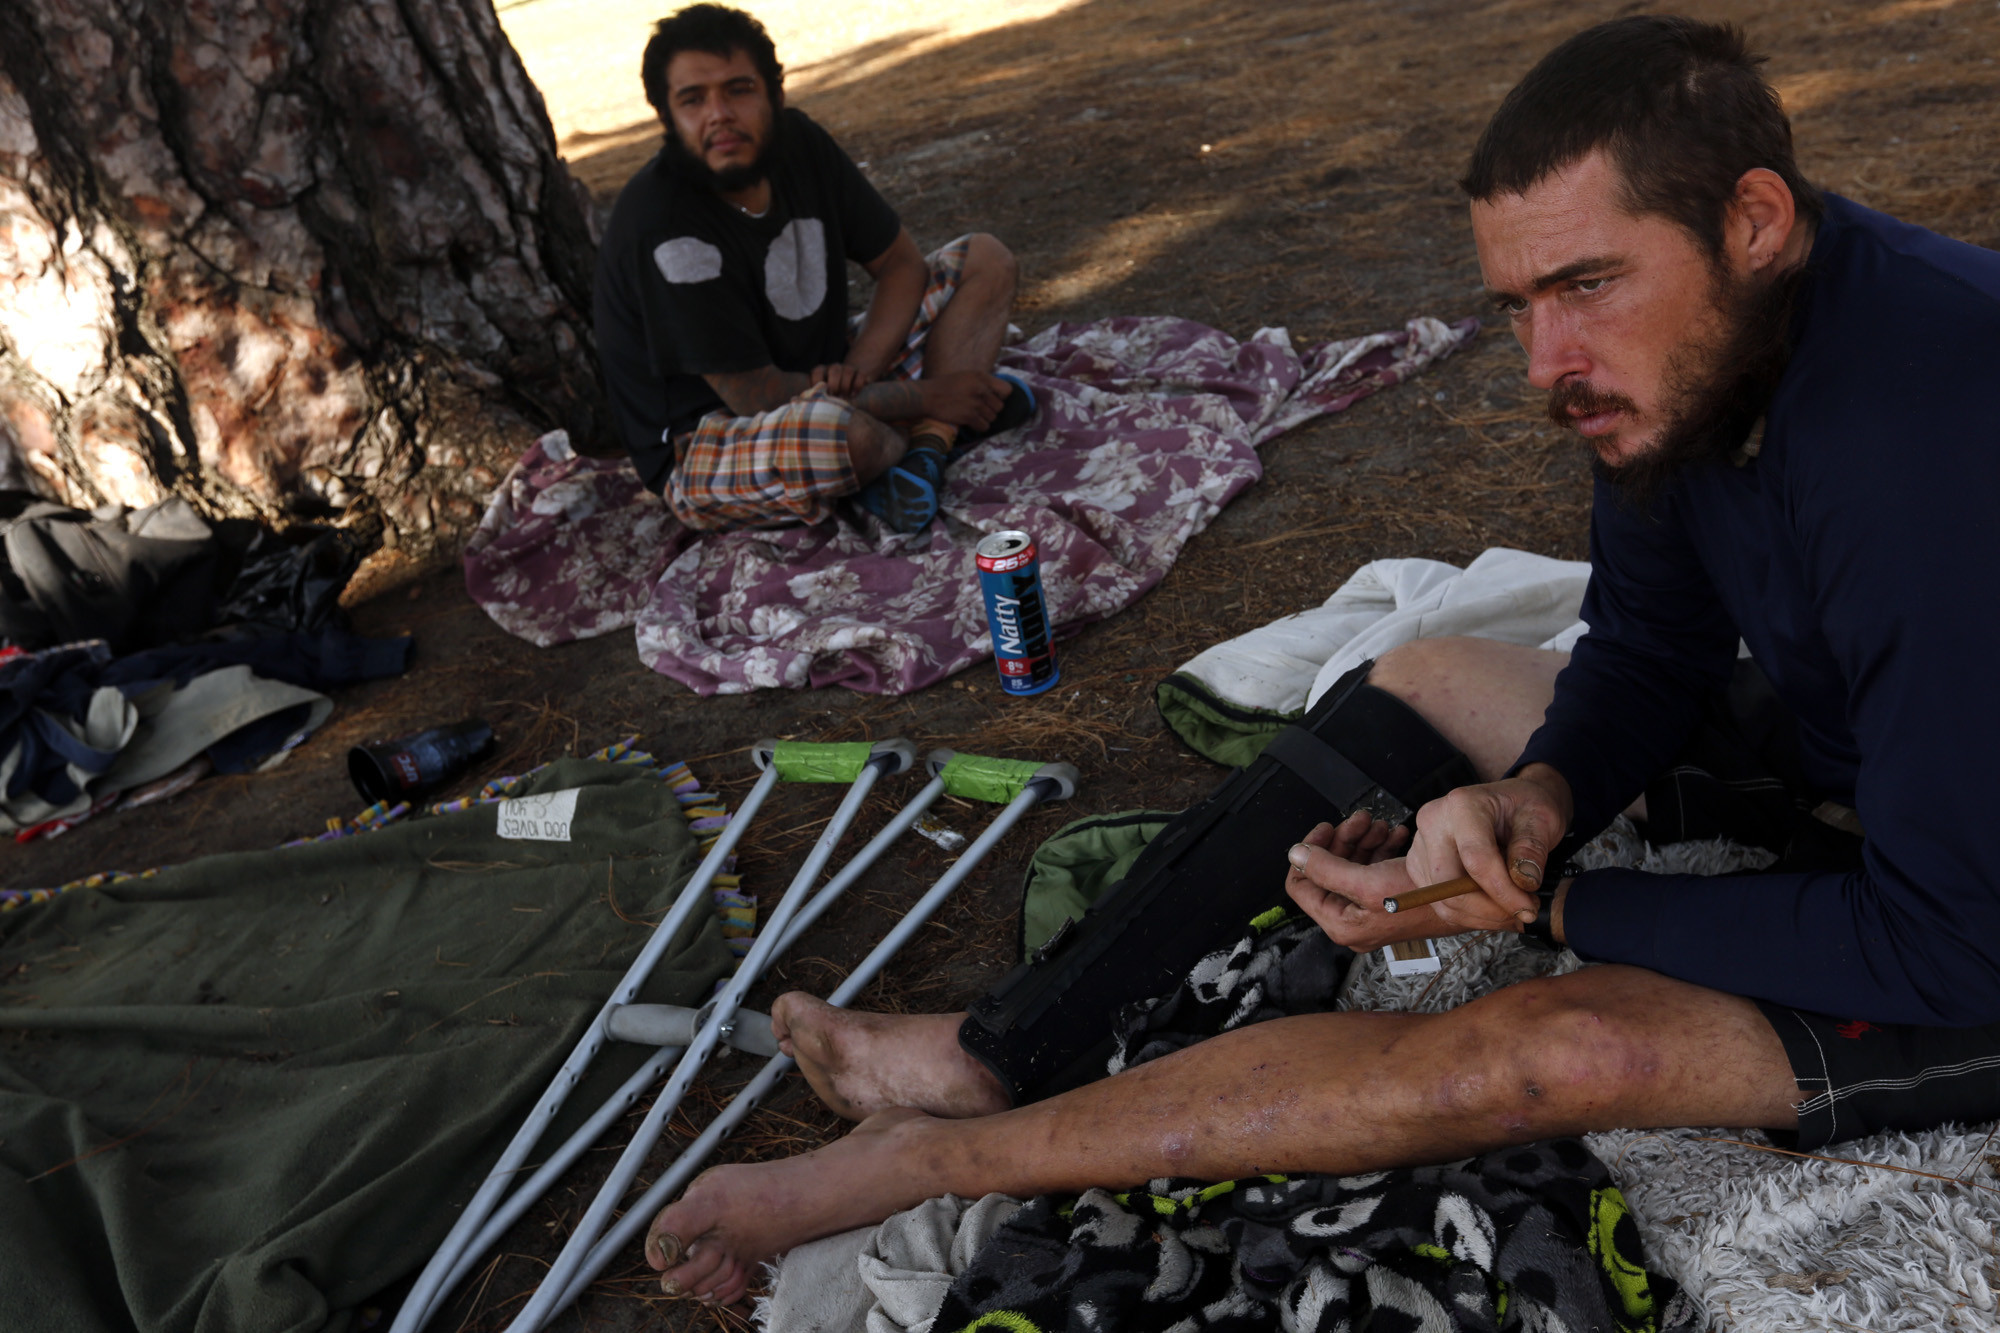 Marine Corp veteran Jason McKenney, 34, from Salem, Mass., right, and Joseph Montoya, 27, of North Hills, are living homeless in North Hollywood Park in North Hollywood.